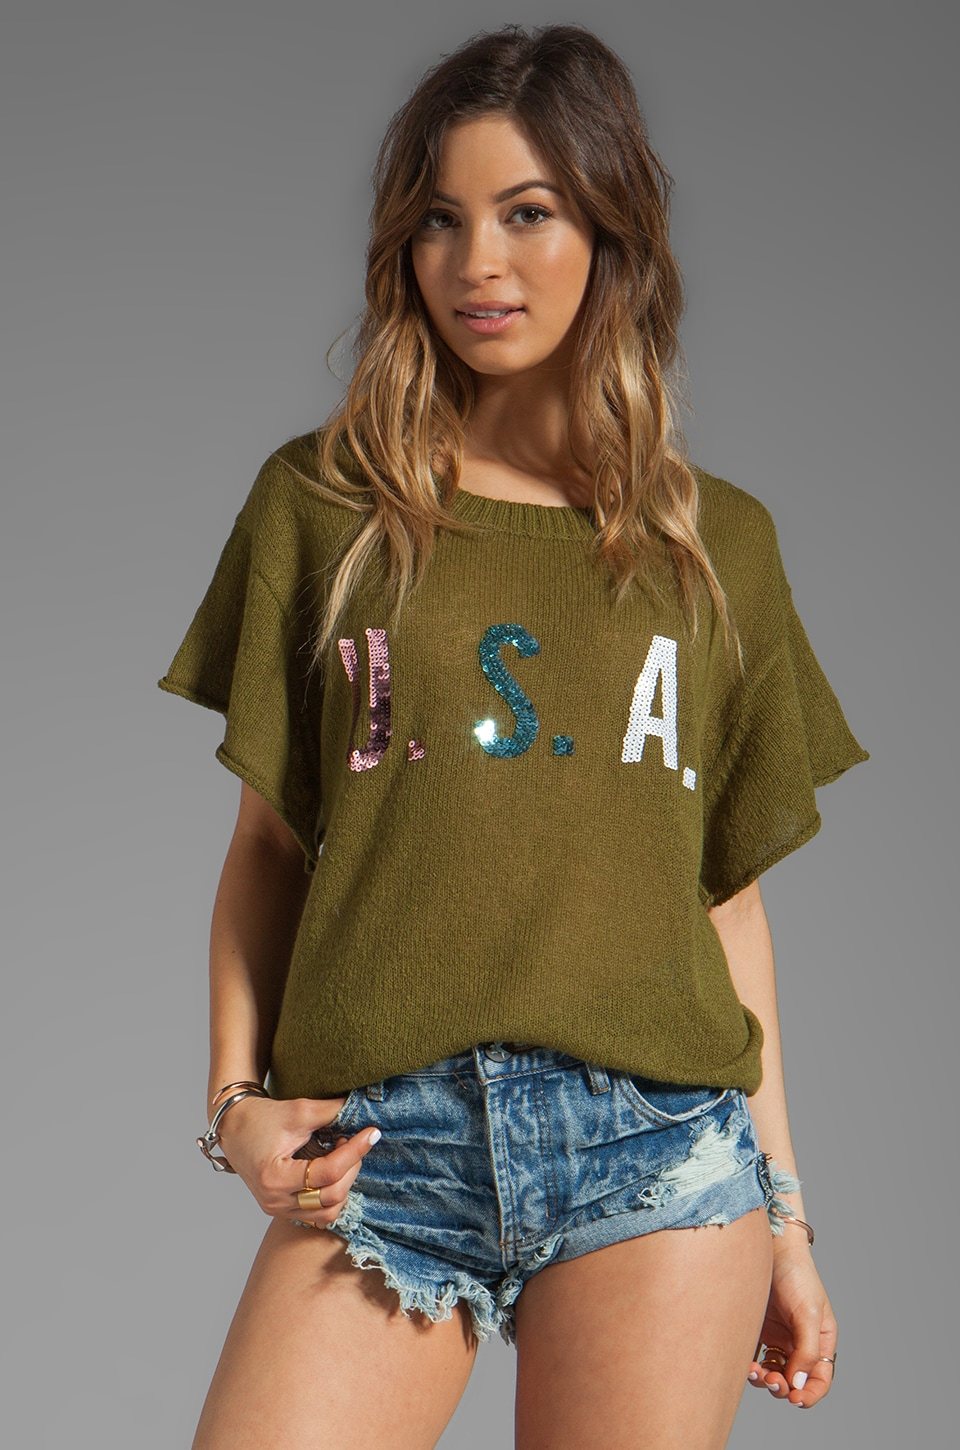 Wildfox Couture Team USA Lake House Tee in Vintage Army